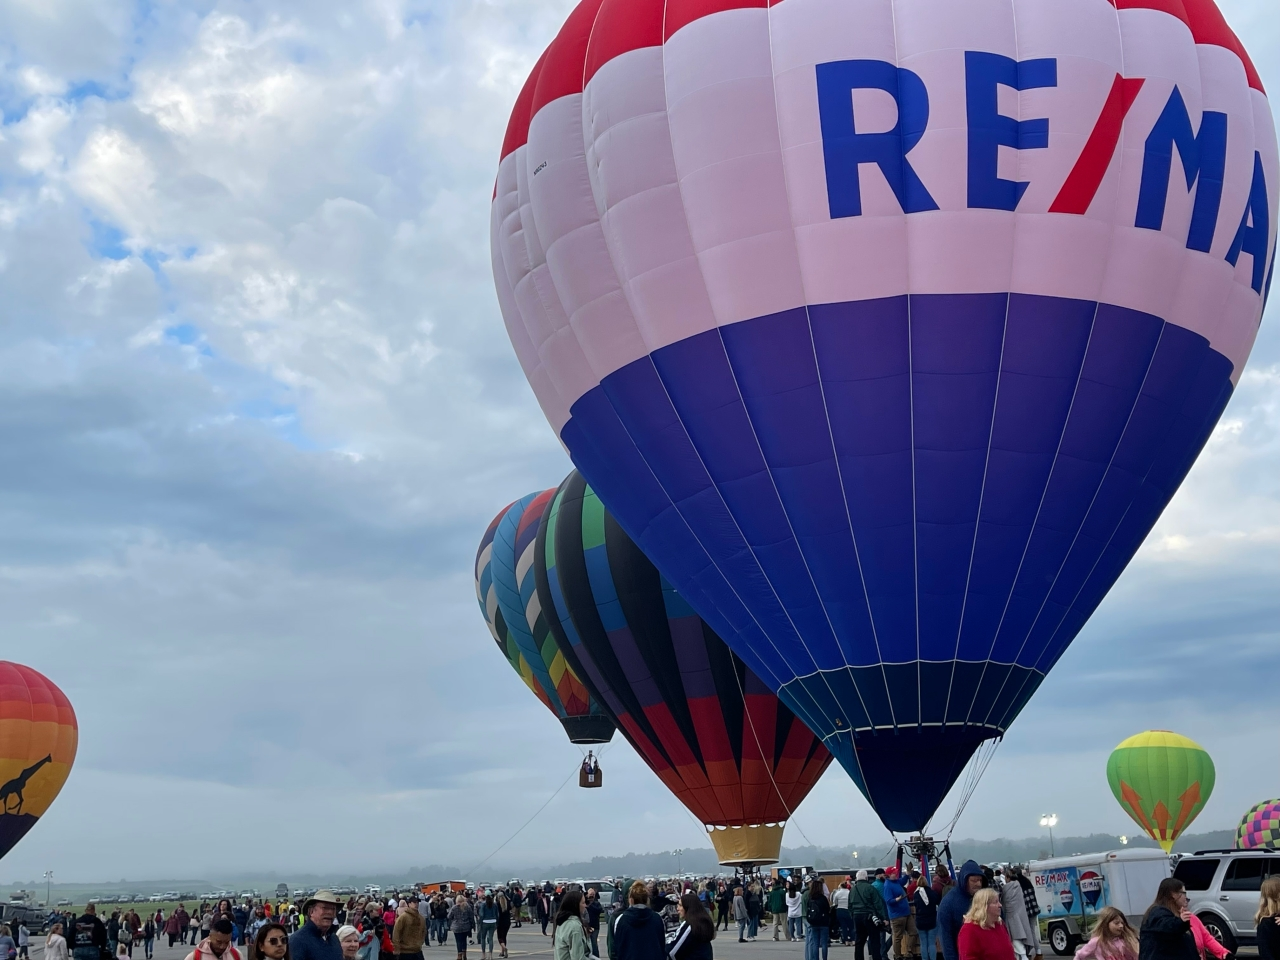 Foggy weather prevents launches on final day of a successful Adirondack Balloon Festival